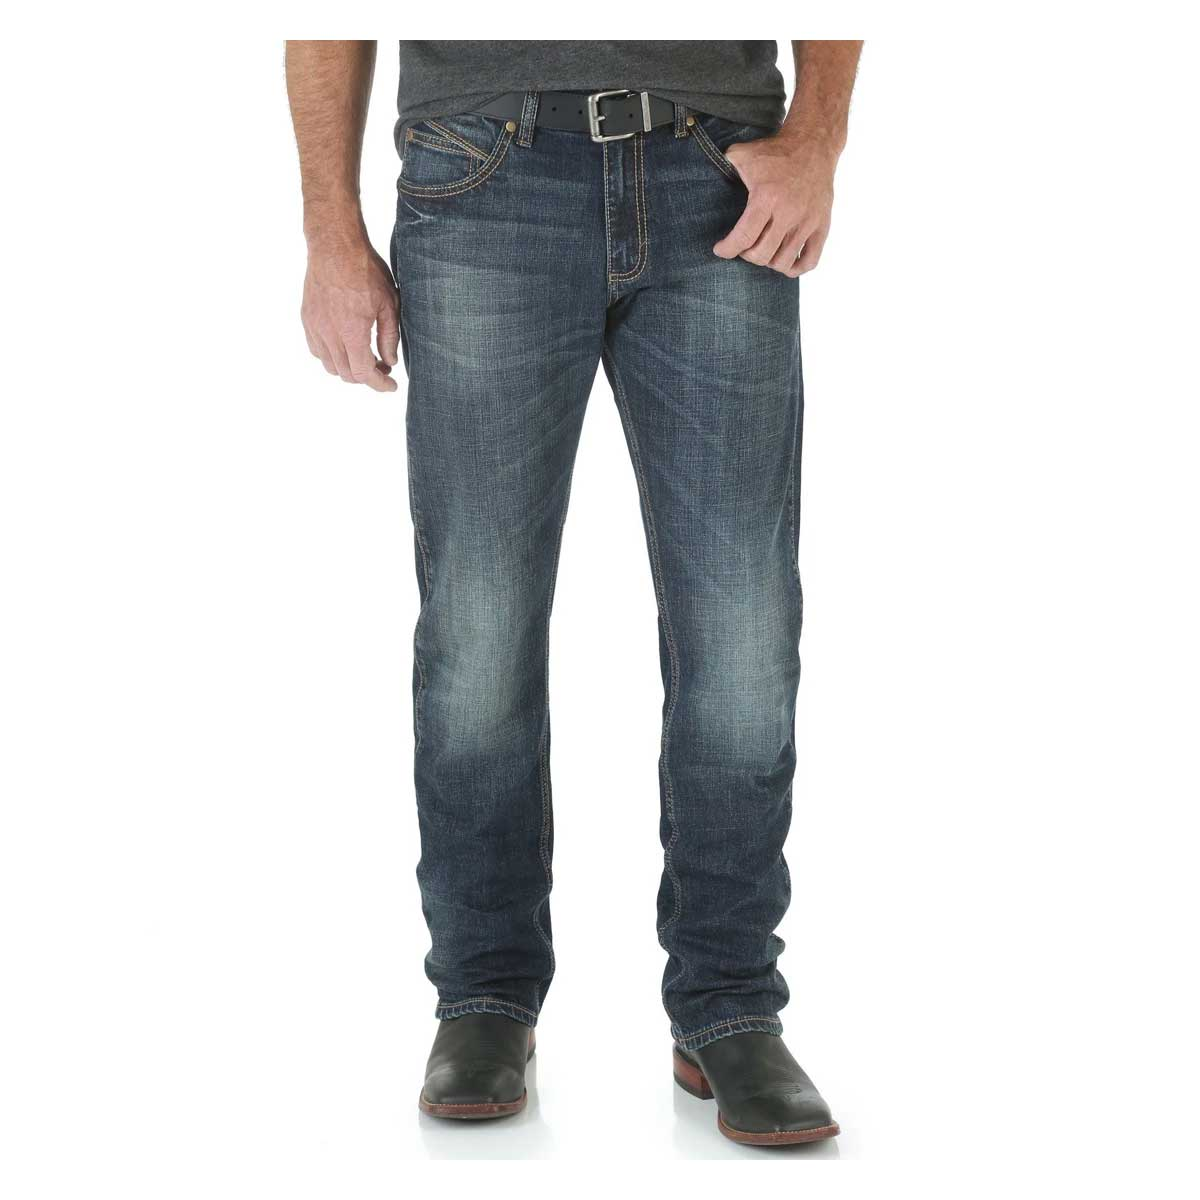 Wrangler Men's Retro Jeans - Slim Fit Straight Leg